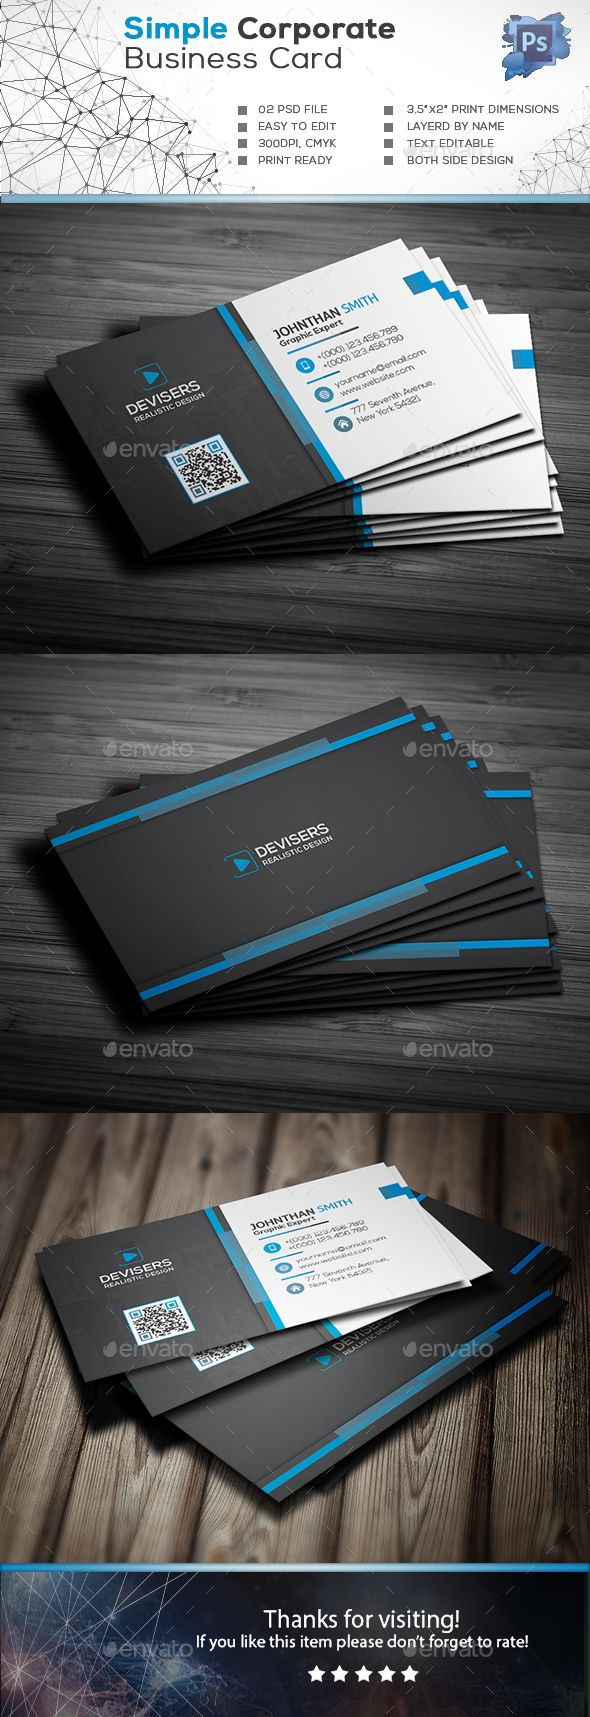 Hello There Business Card Creation Kit Images Design